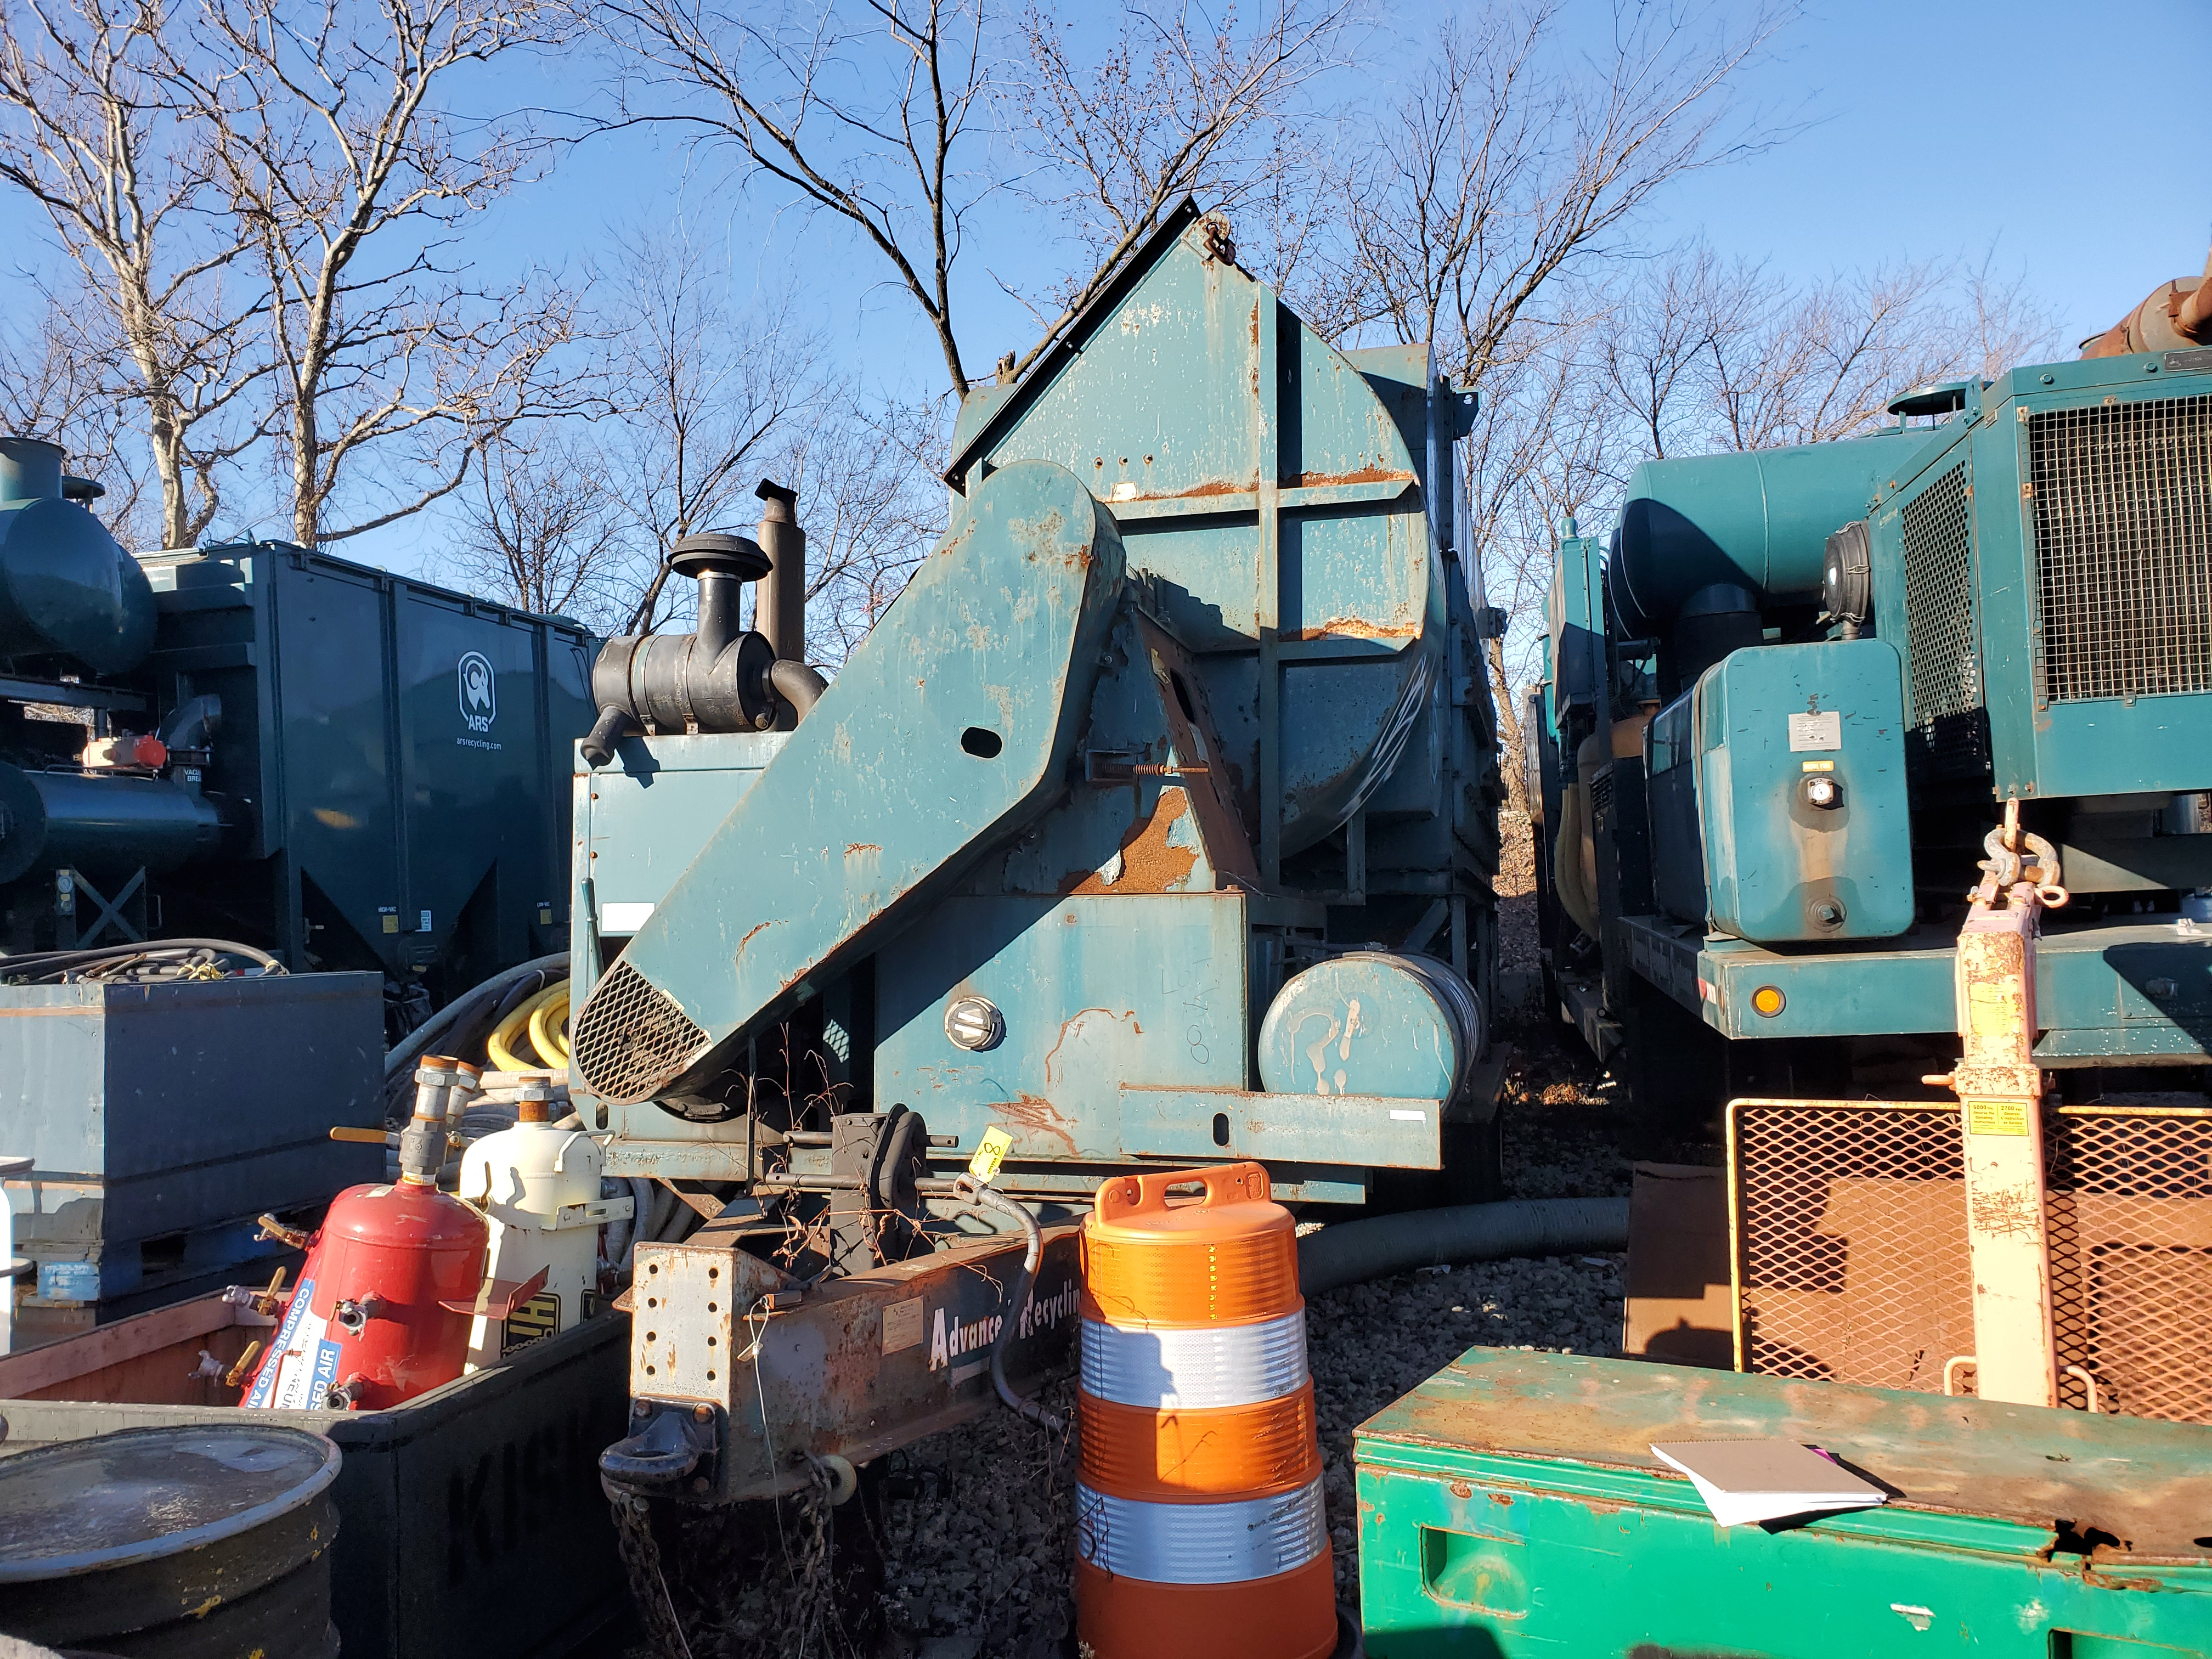 Lot 8 - 2001 ADVANCED RECYCLING SYSTEMS MDL. DC-40 DUST COLLECTION SYSTEM, ON TRAILER DECK, S/N: